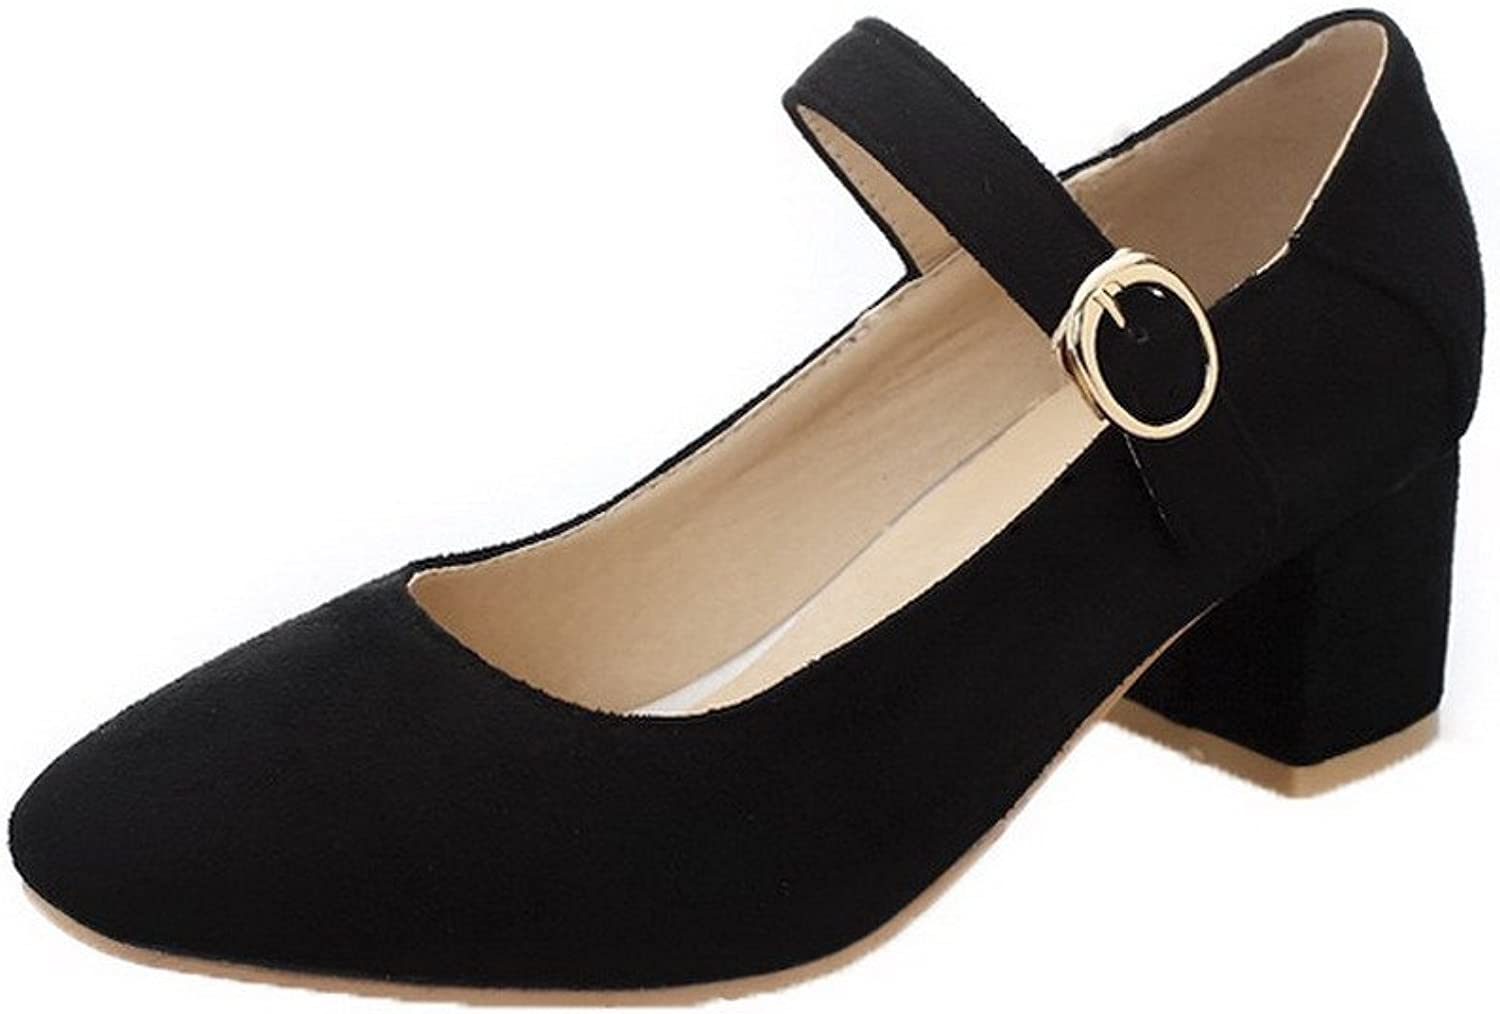 WeenFashion Women's Square Closed Toe Pumps-shoes